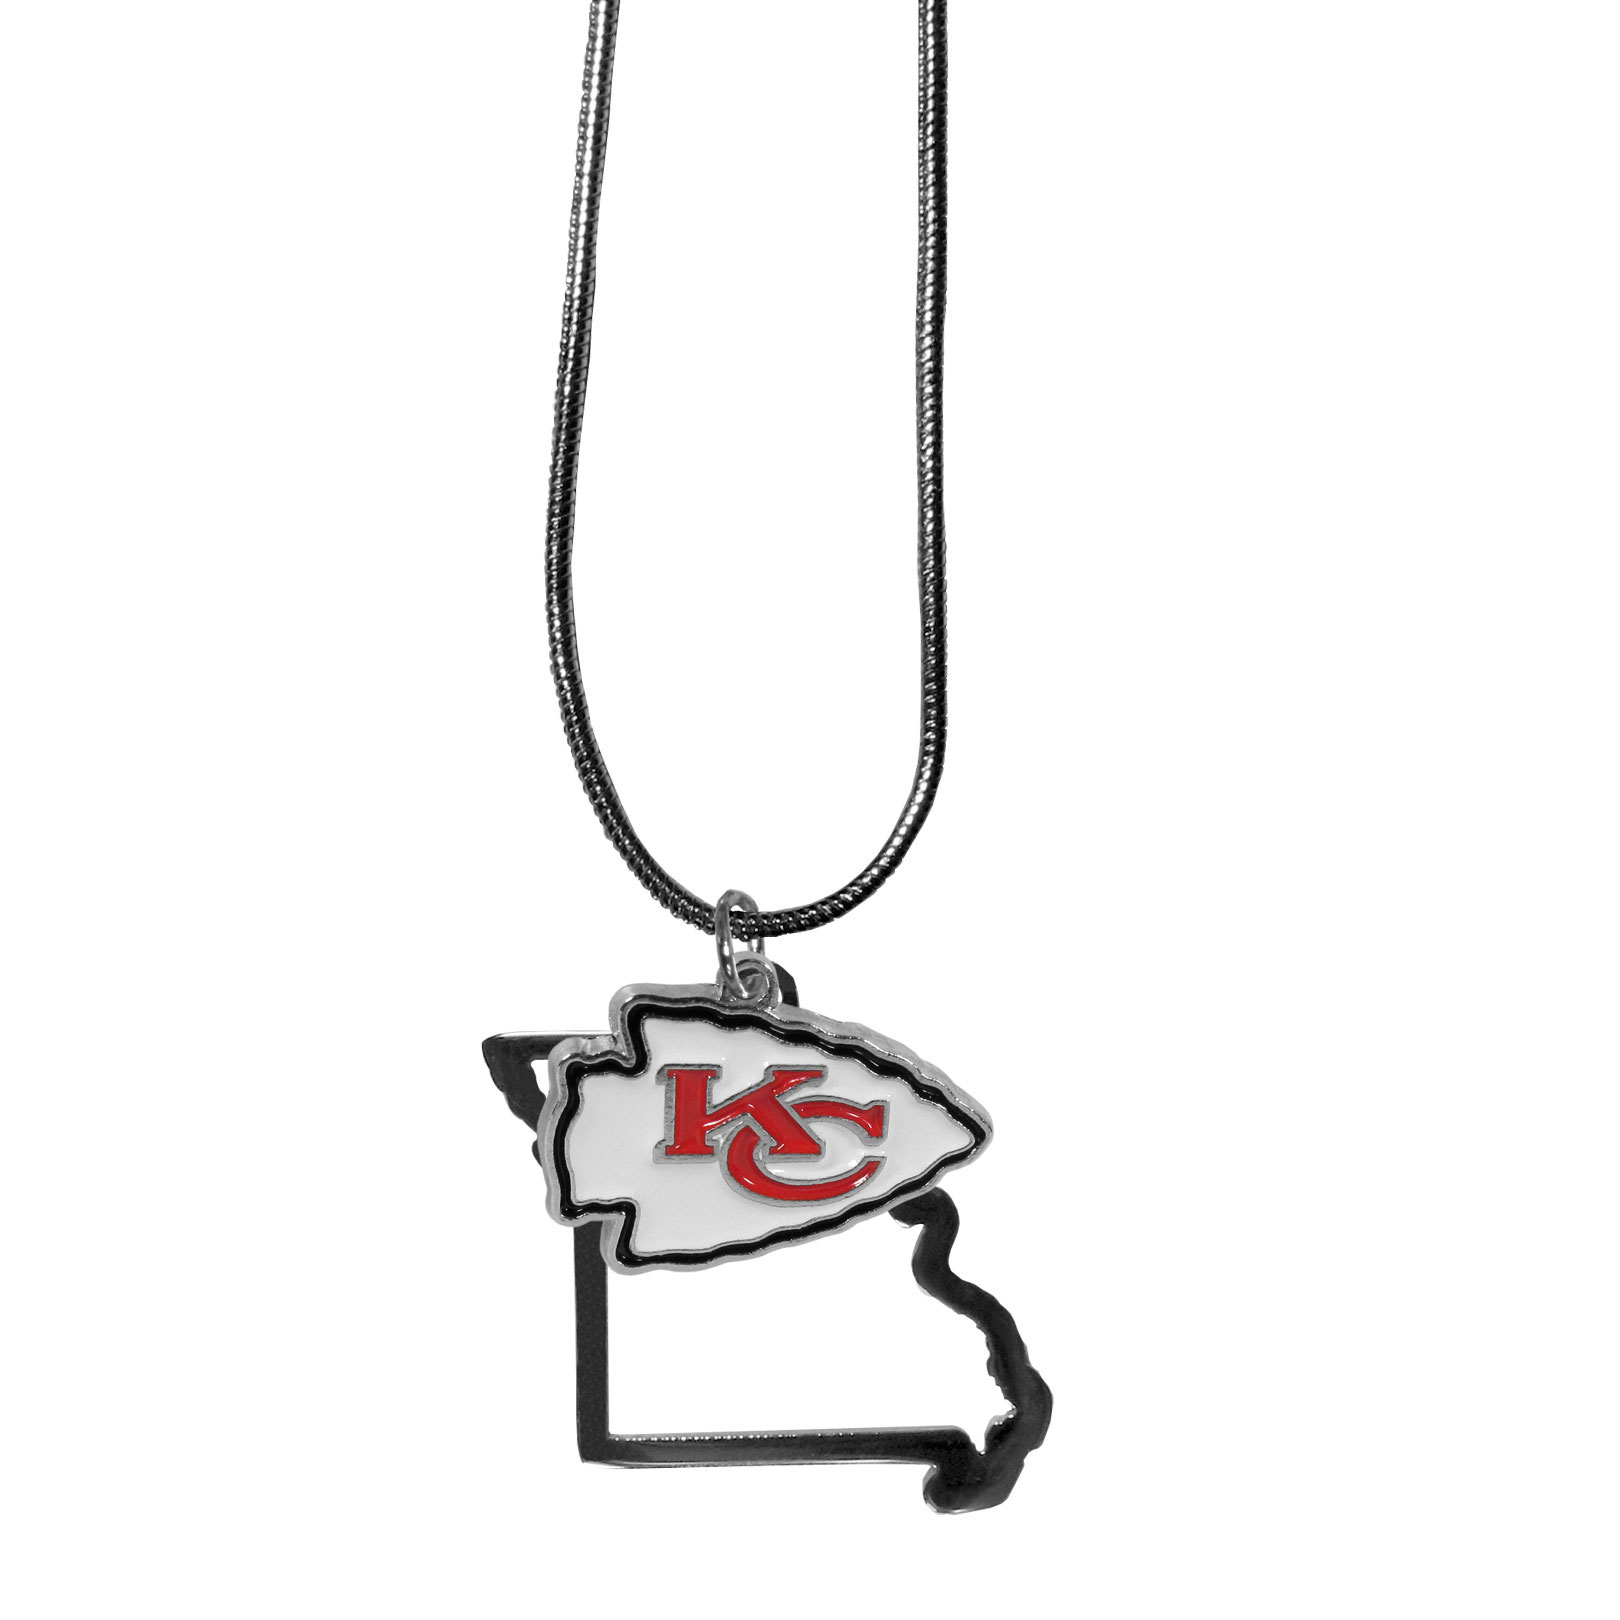 Kansas City Chiefs State Charm Necklace - Get in on the trend! State themes are a trend that just keeps getting more popular and these necklaces take the state style and give it a sporty twist with a Kansas City Chiefs added to the state outline charm. The come on a snake chain that is 22 inches long.